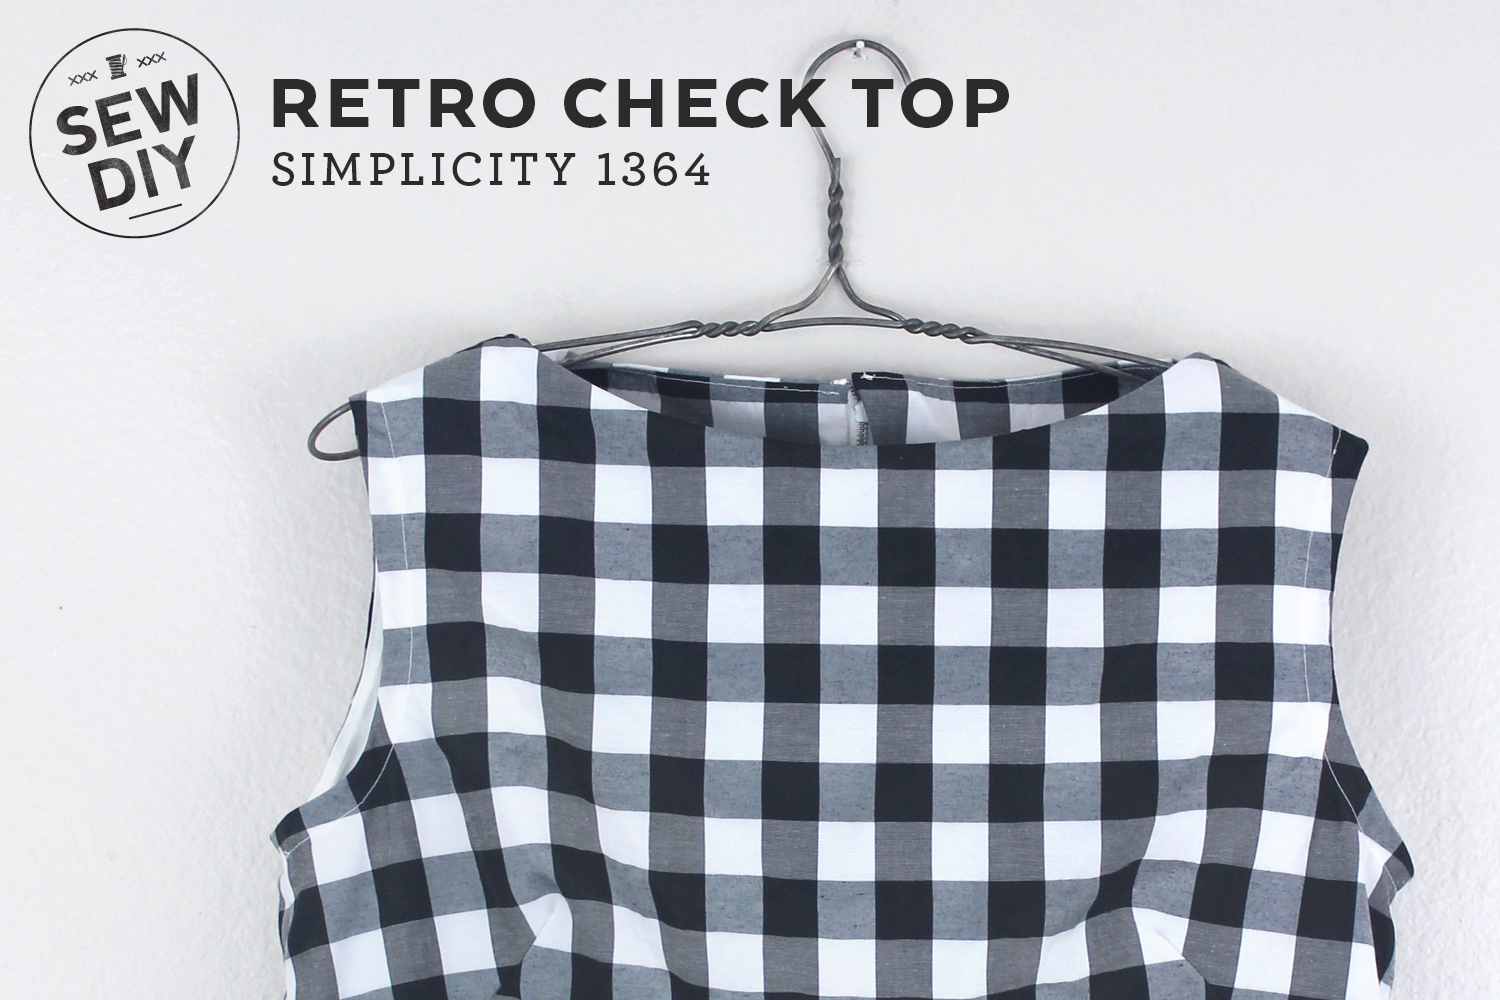 DIY Retro Check Top – Simplicity 1364 Sew DIY